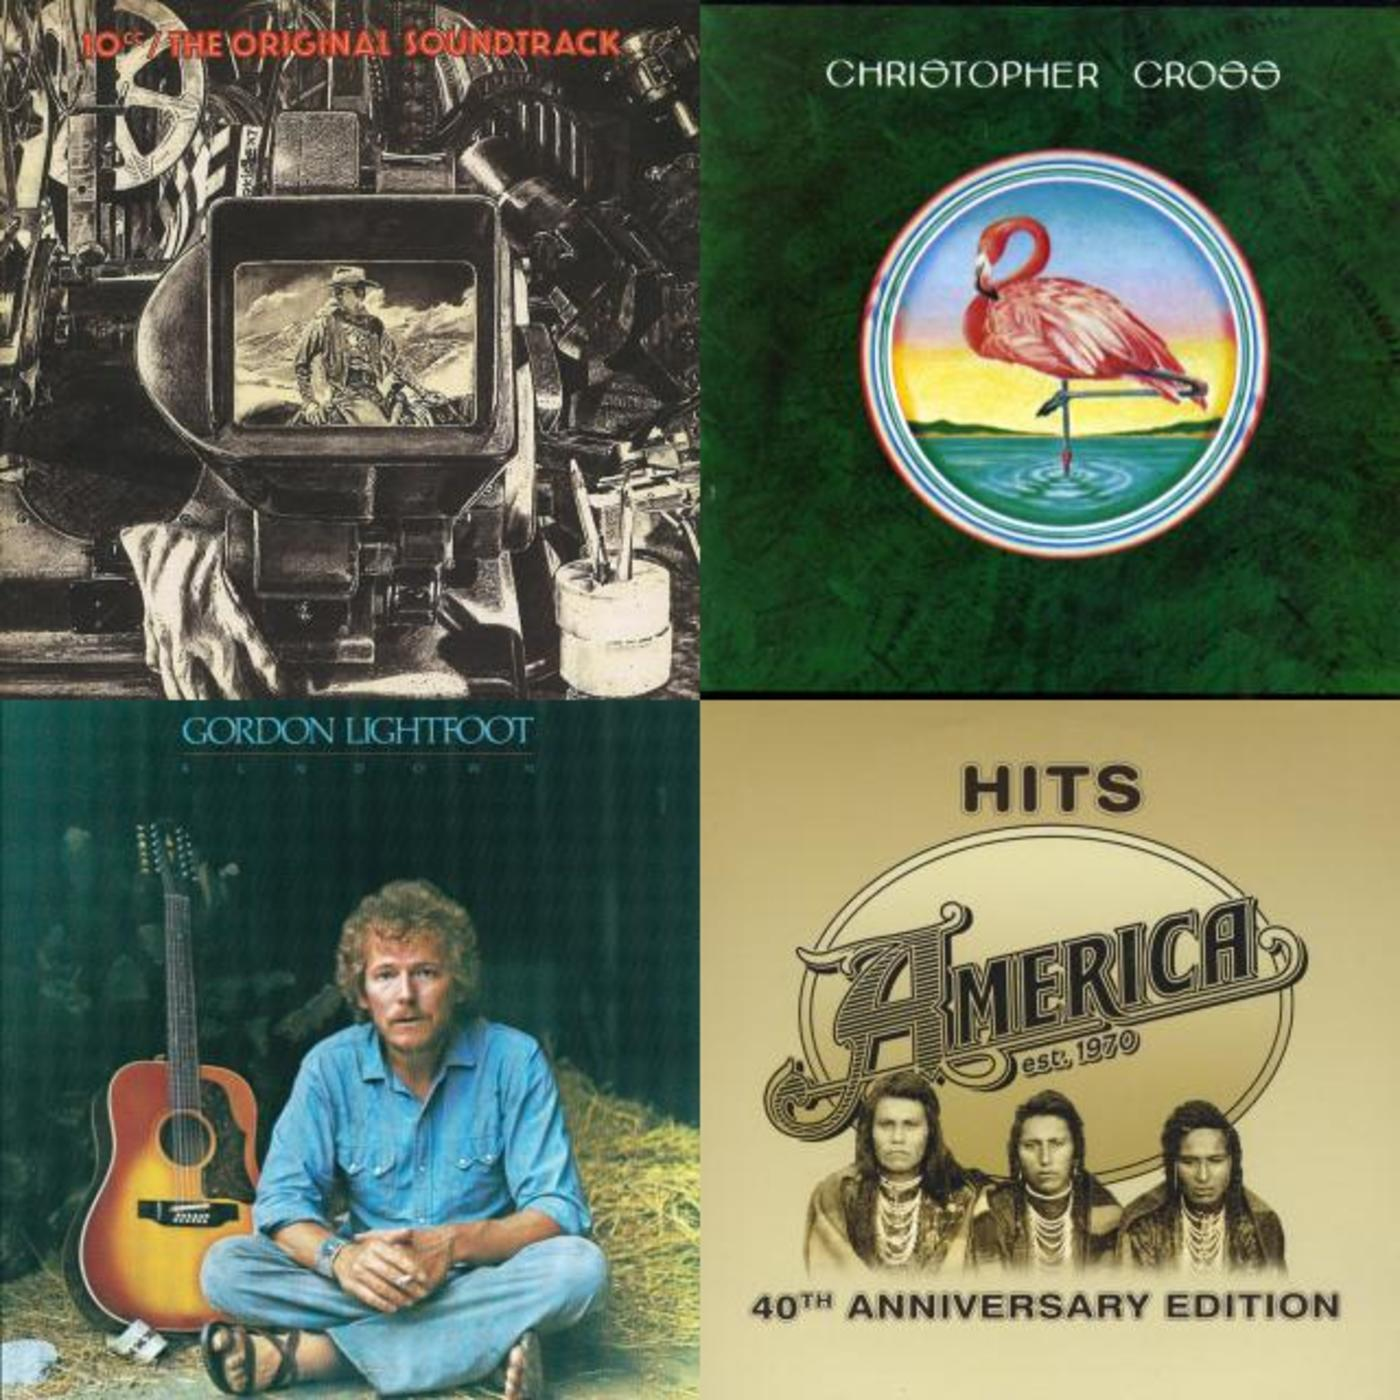 Yacht Rock Etc - Christopher Cross, America, 10cc, Gordon Lightfoot, Seals and Crofts, Starbuck, Billy Ocean, Toto, Gerry Rafferty, The Doobie Brothers, Steely Dan